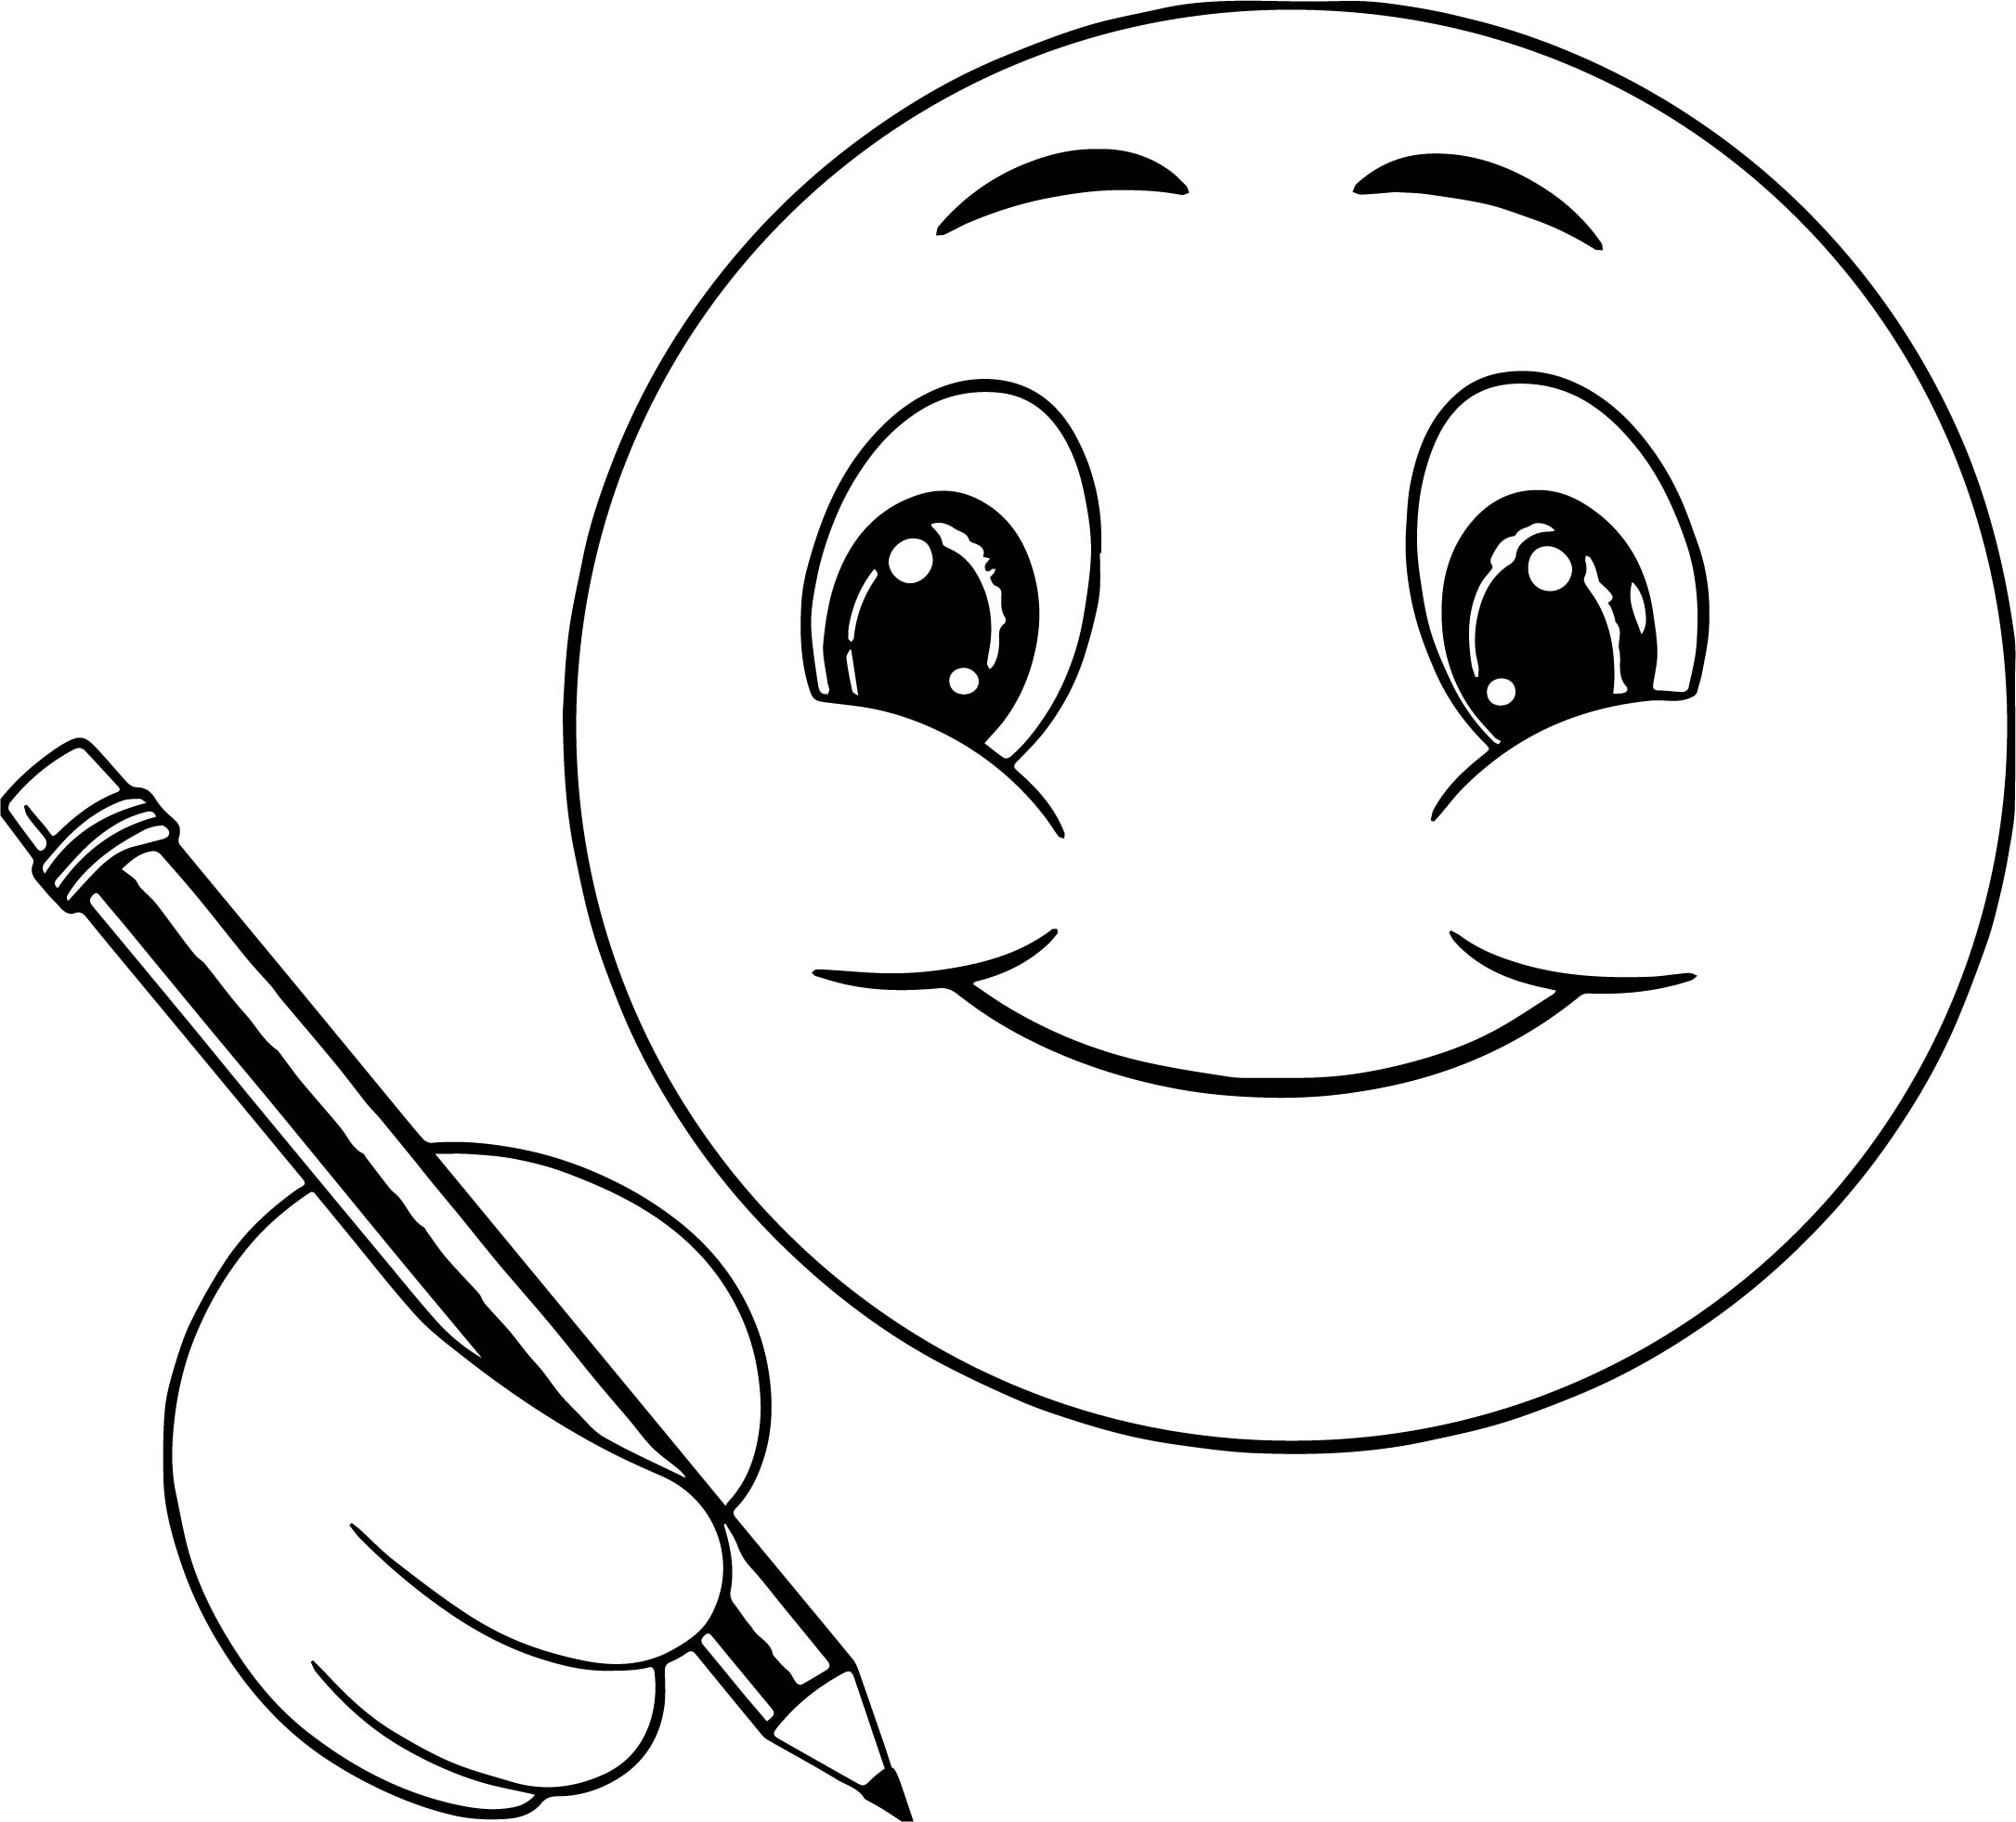 Smiling coloring pages ~ Cute Smile Emoticon Icons Writing Face Coloring Page ...